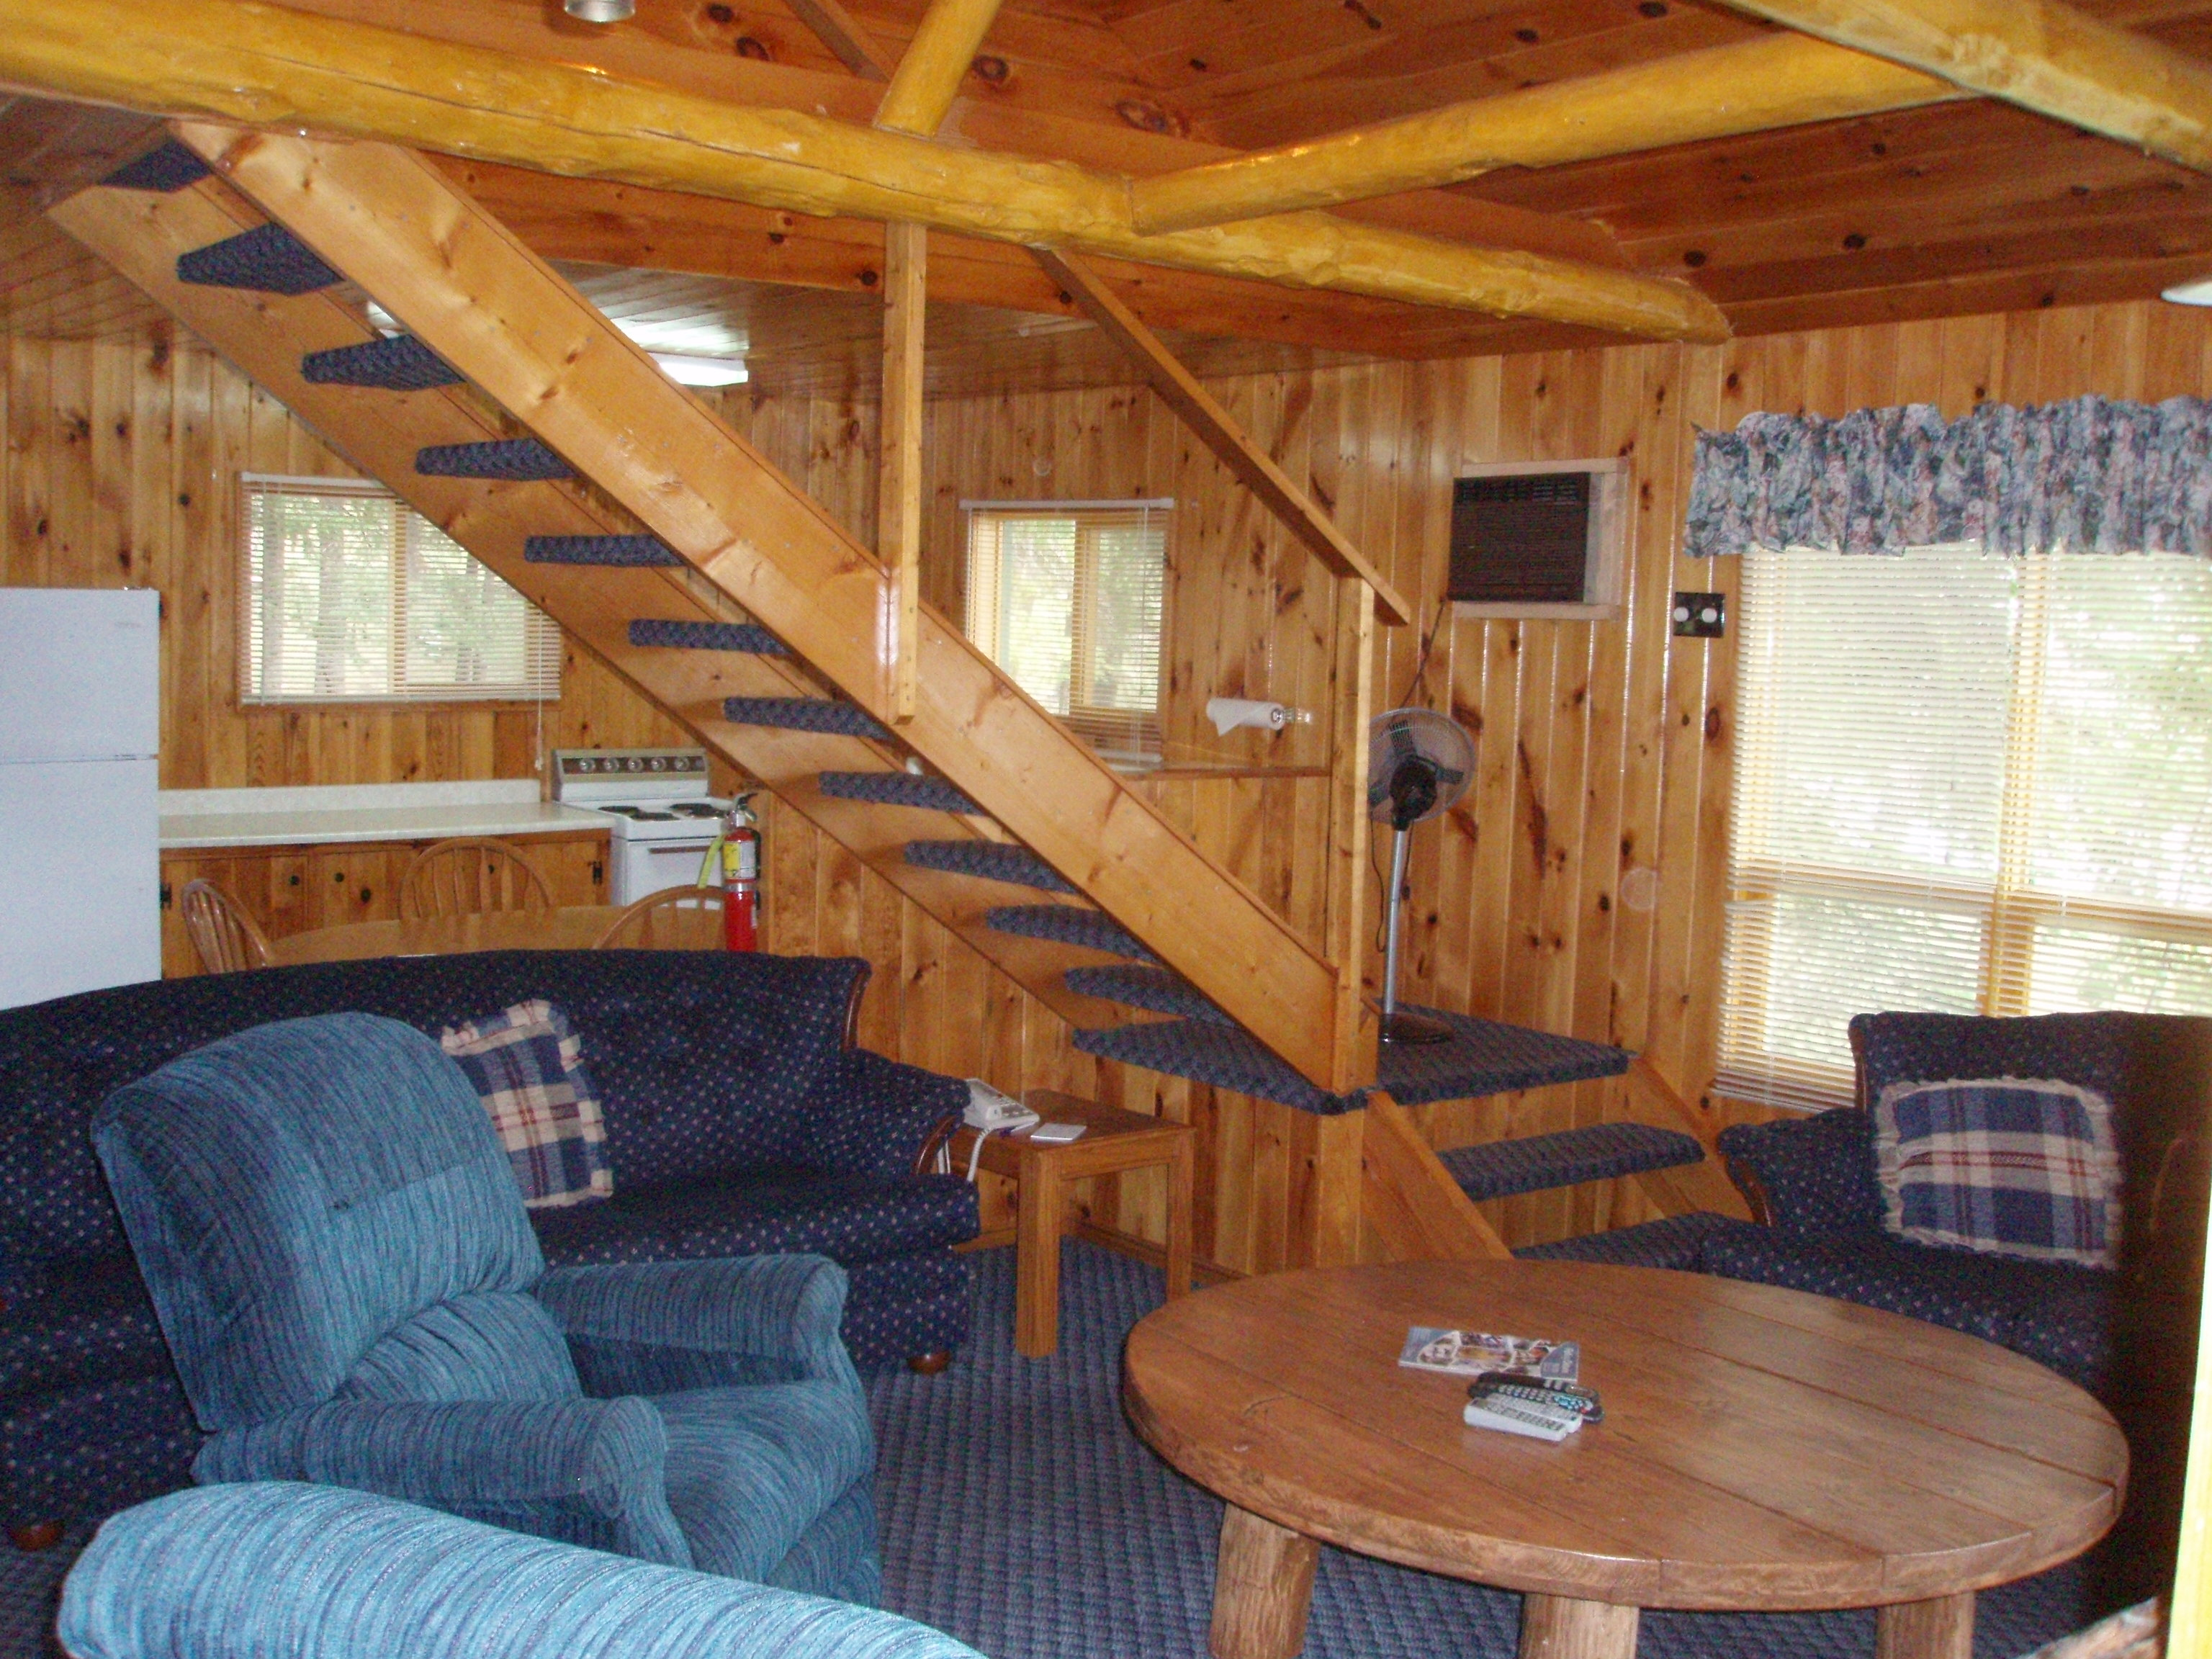 inside view of one of the cabins main areas with a couch, chair, table, stairs leading up to the next floor